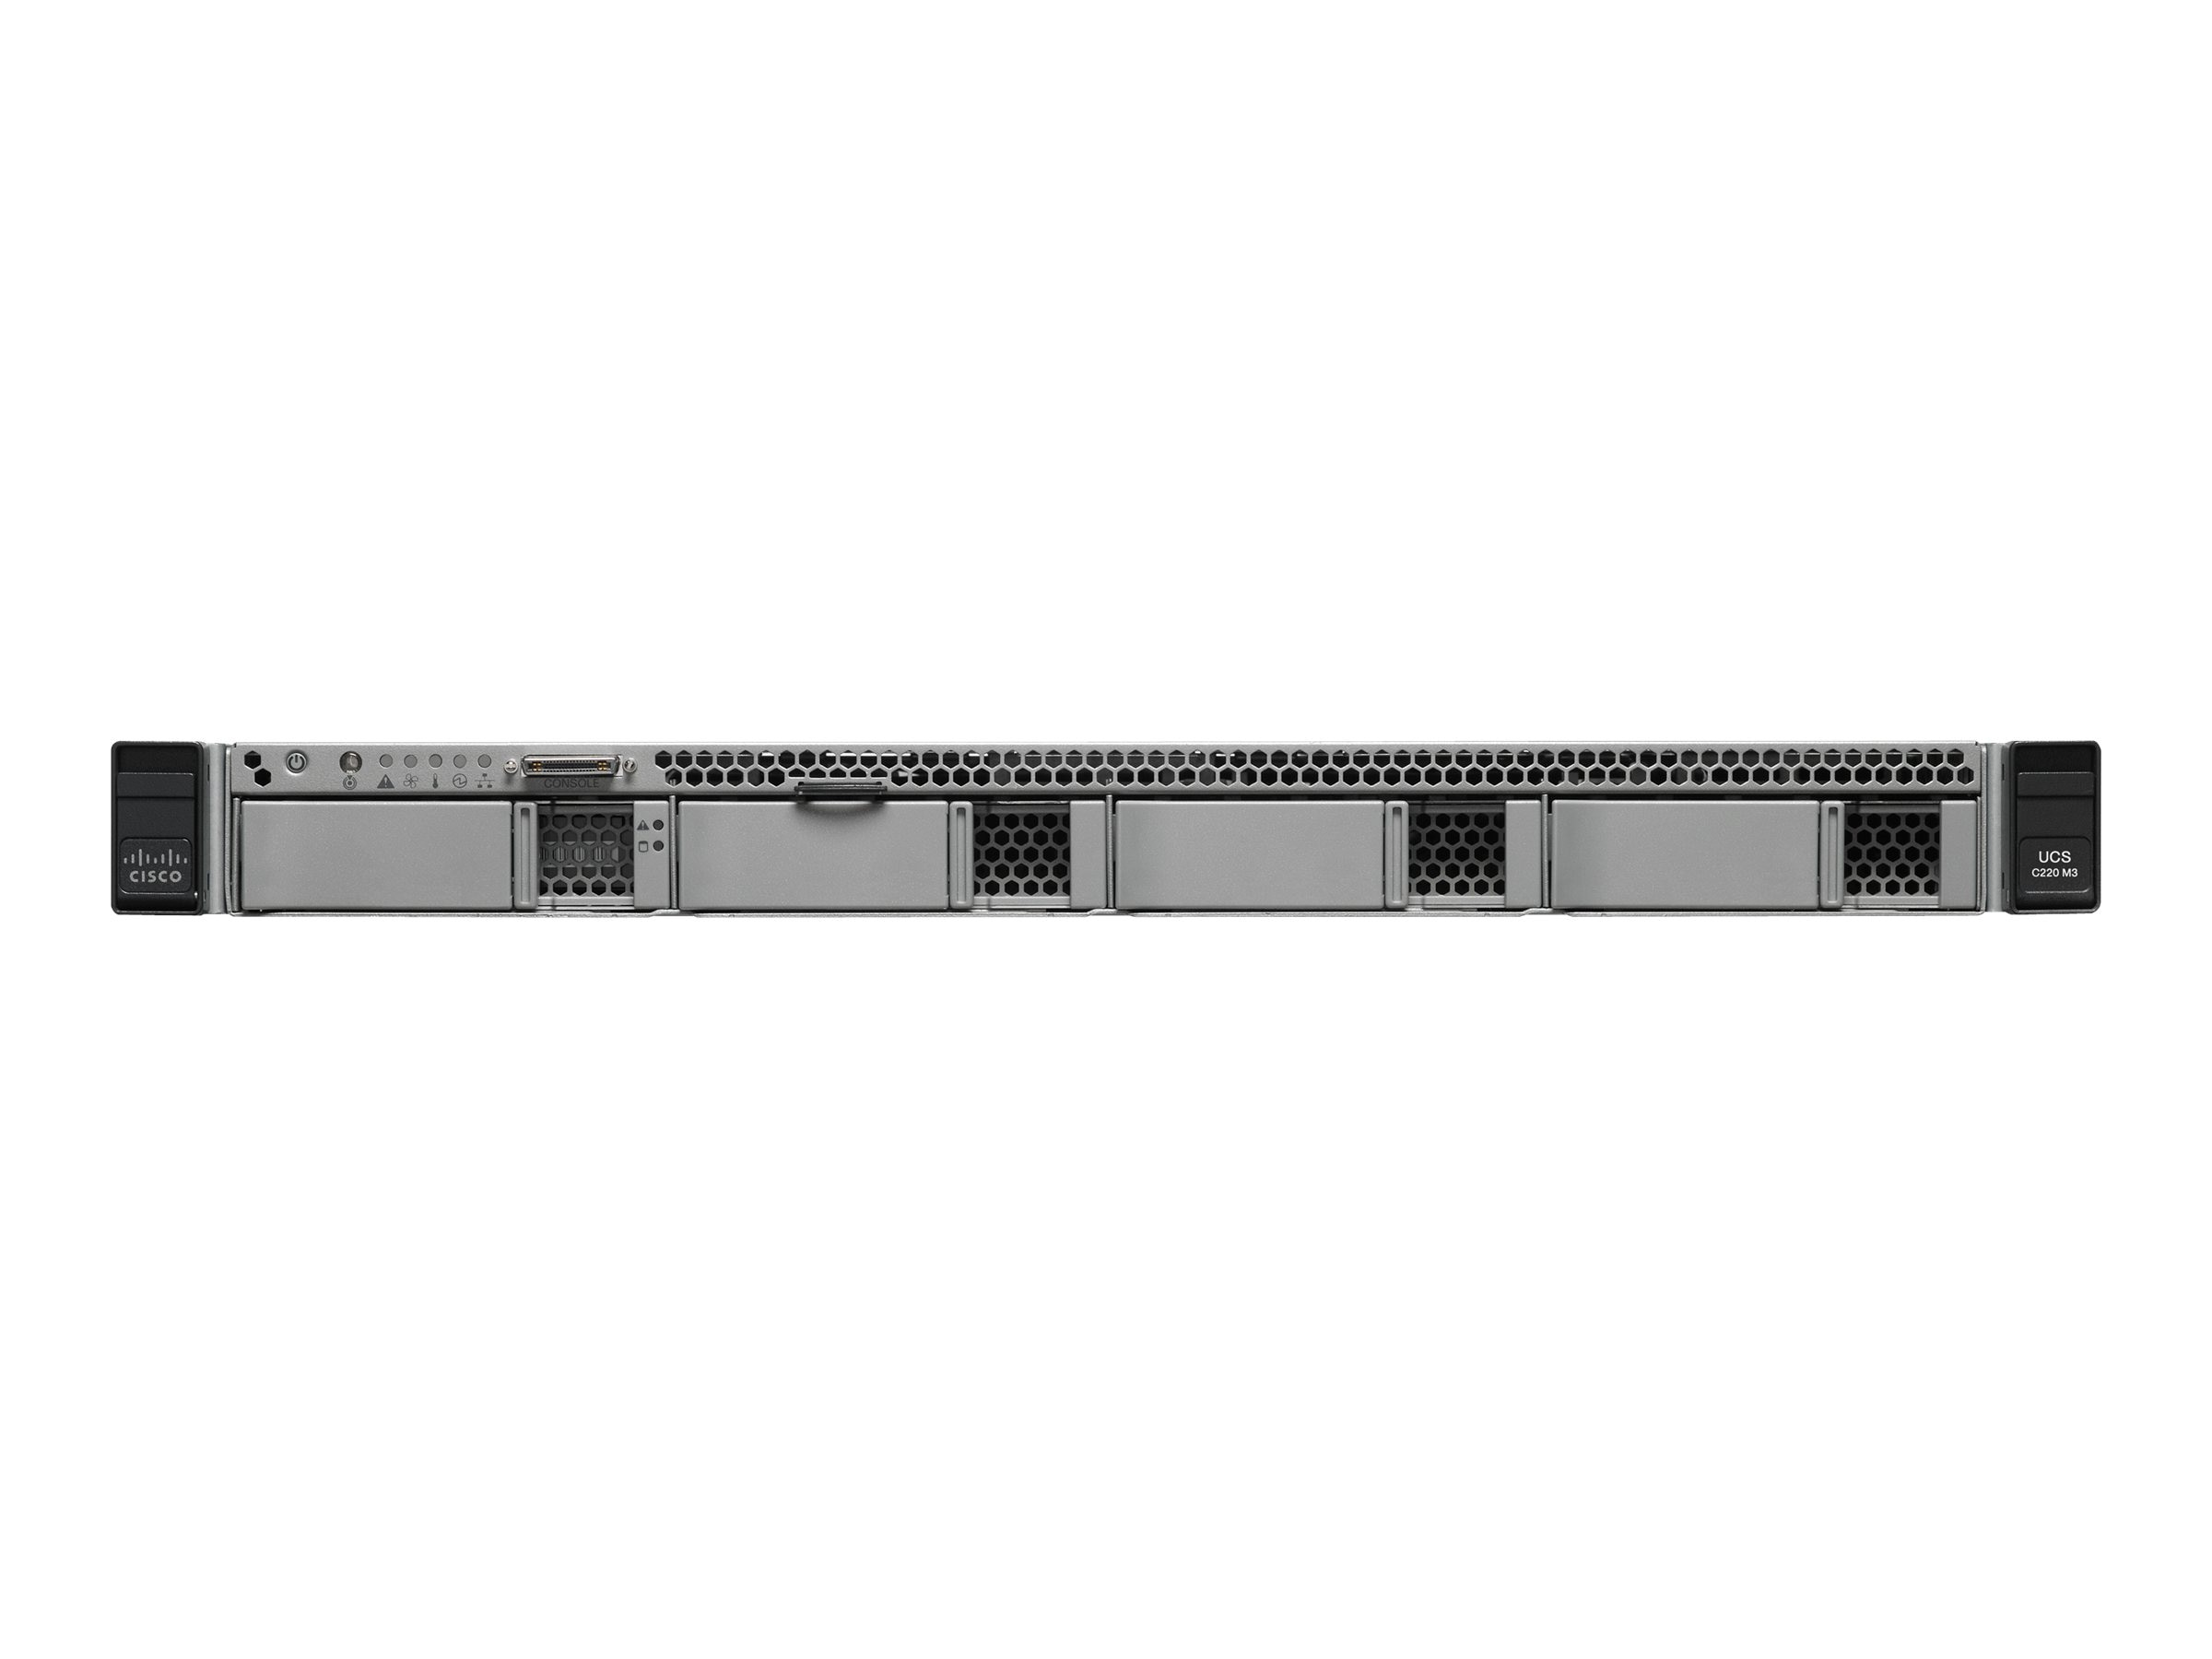 Cisco Connected Safety and Security UCS C220 1U RM Xeon E5-2609 8GB 4x3.5 Bays, CPS-UCS-1RU-K9